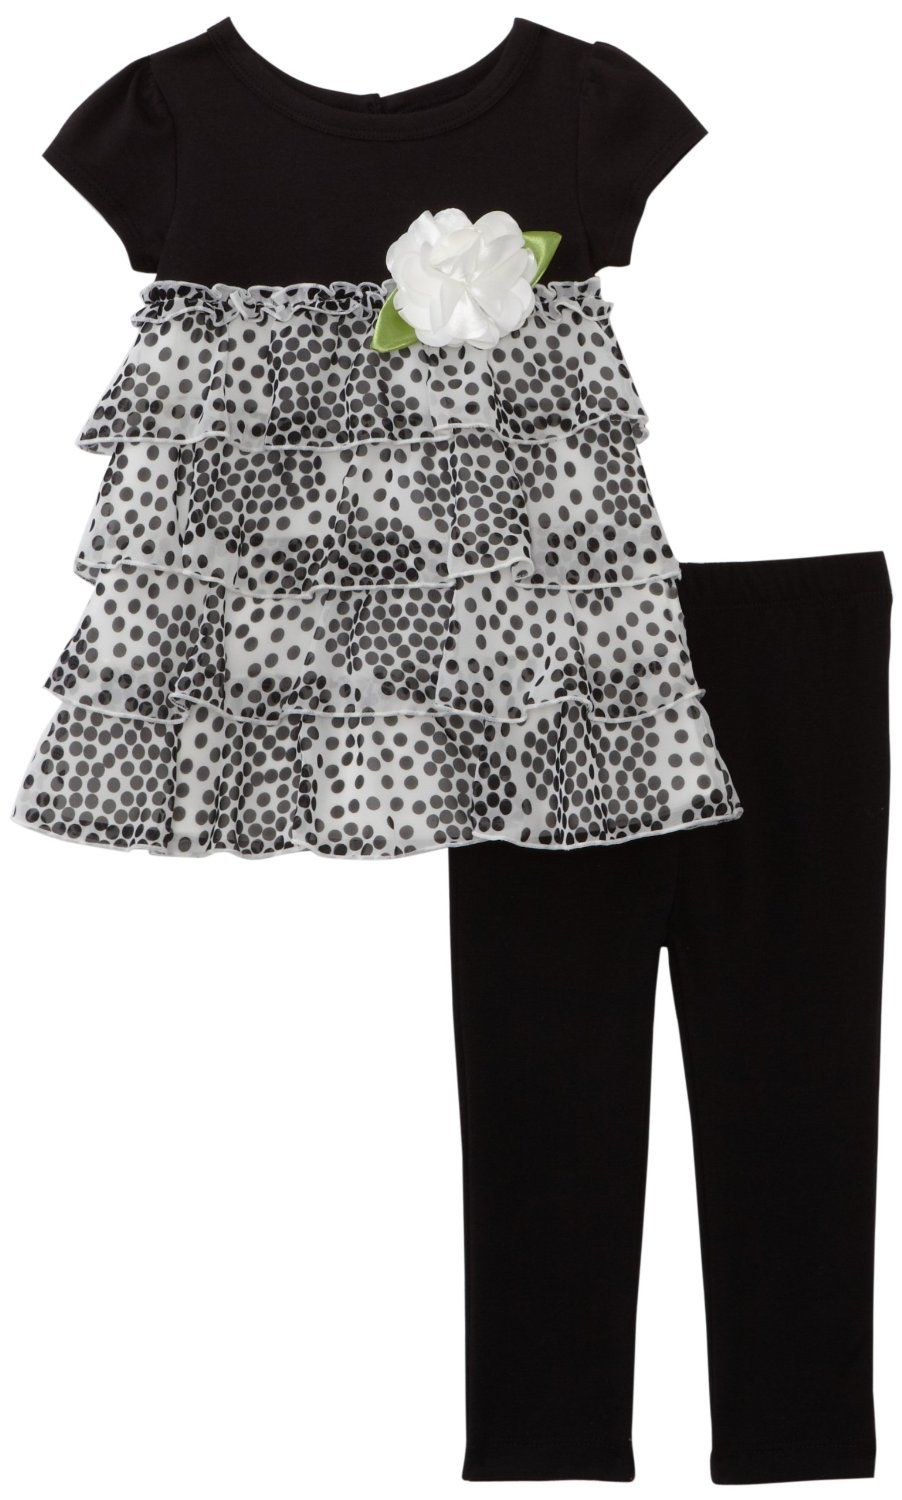 Amazon.com: Sweet Heart Rose Girls 2-6X vestido de lunares con Legging, Negro / Blanco, 4: Vestimenta